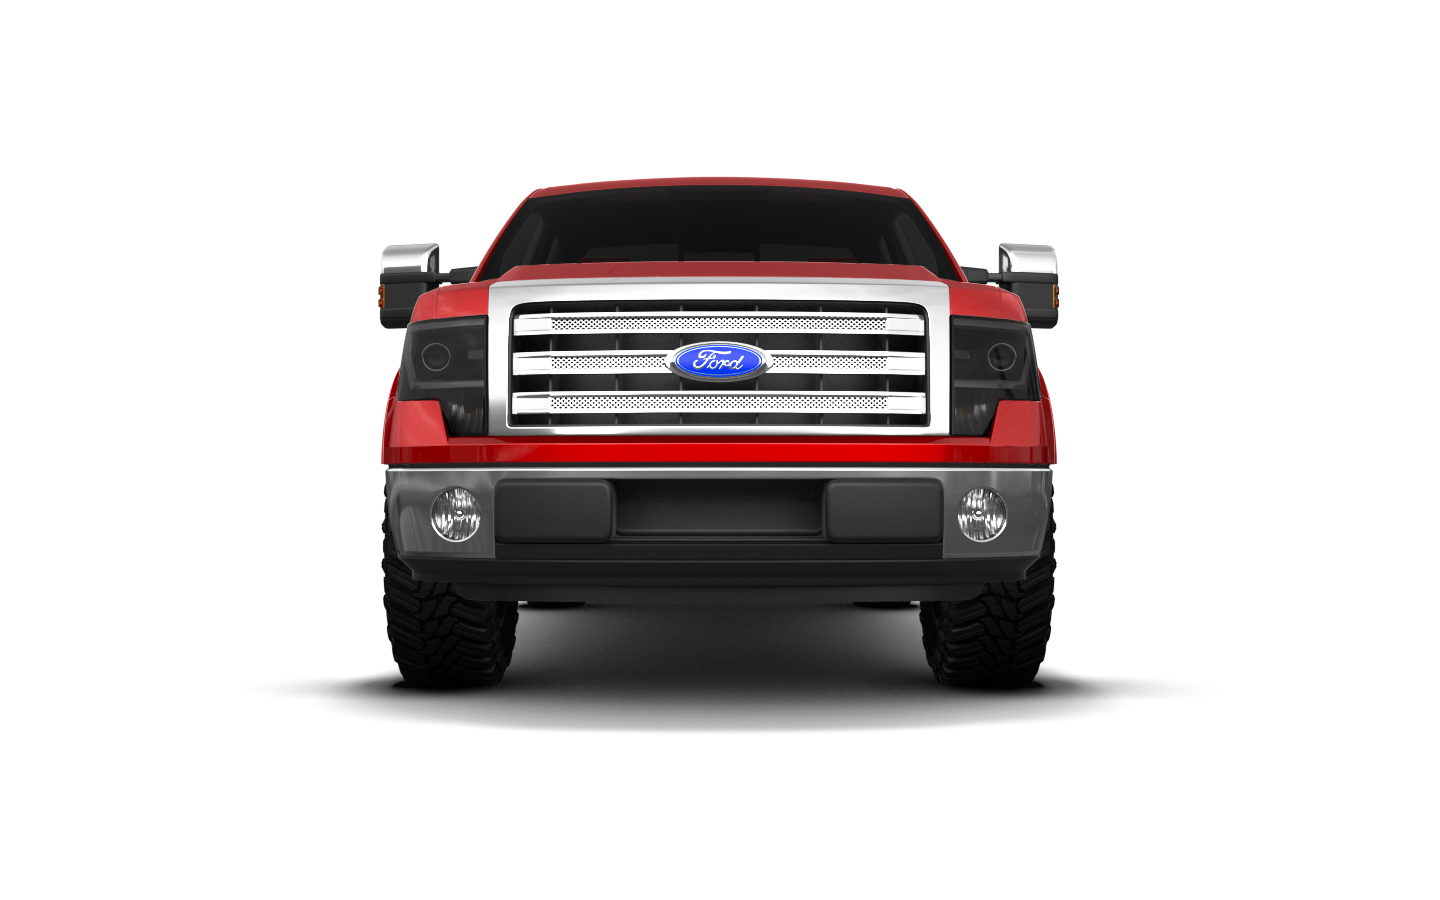 Ford F-150 Crew Cab 4 Door pickup truck 2013 tuning